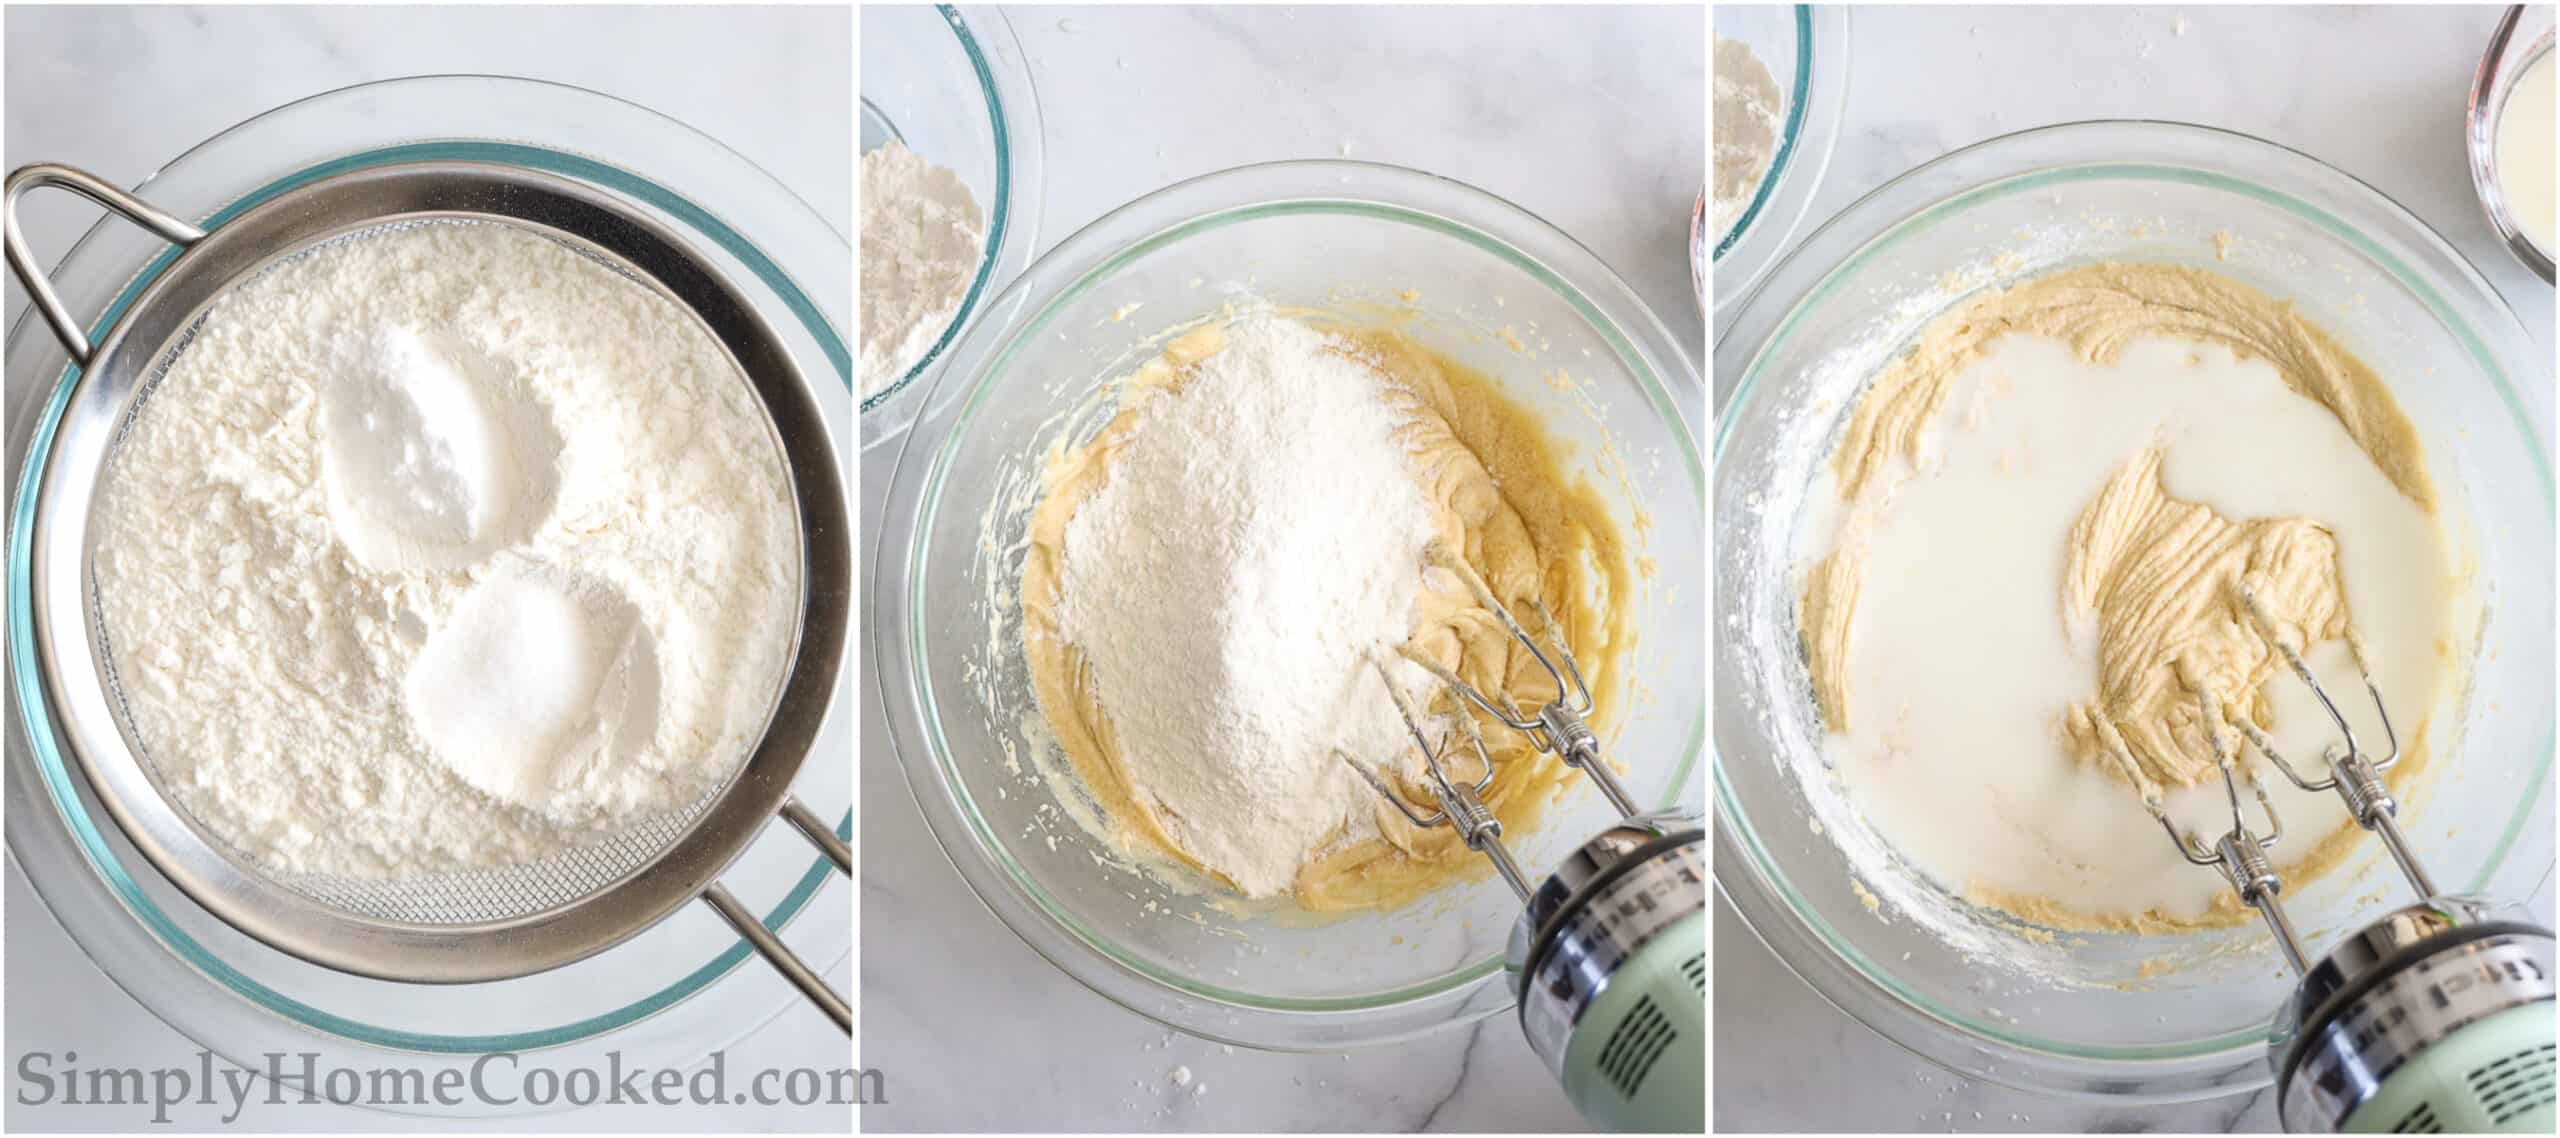 Steps to make Apple Fritter Bread, including sifting the fry ingredients and then mixing them into the batter with the buttermilk.